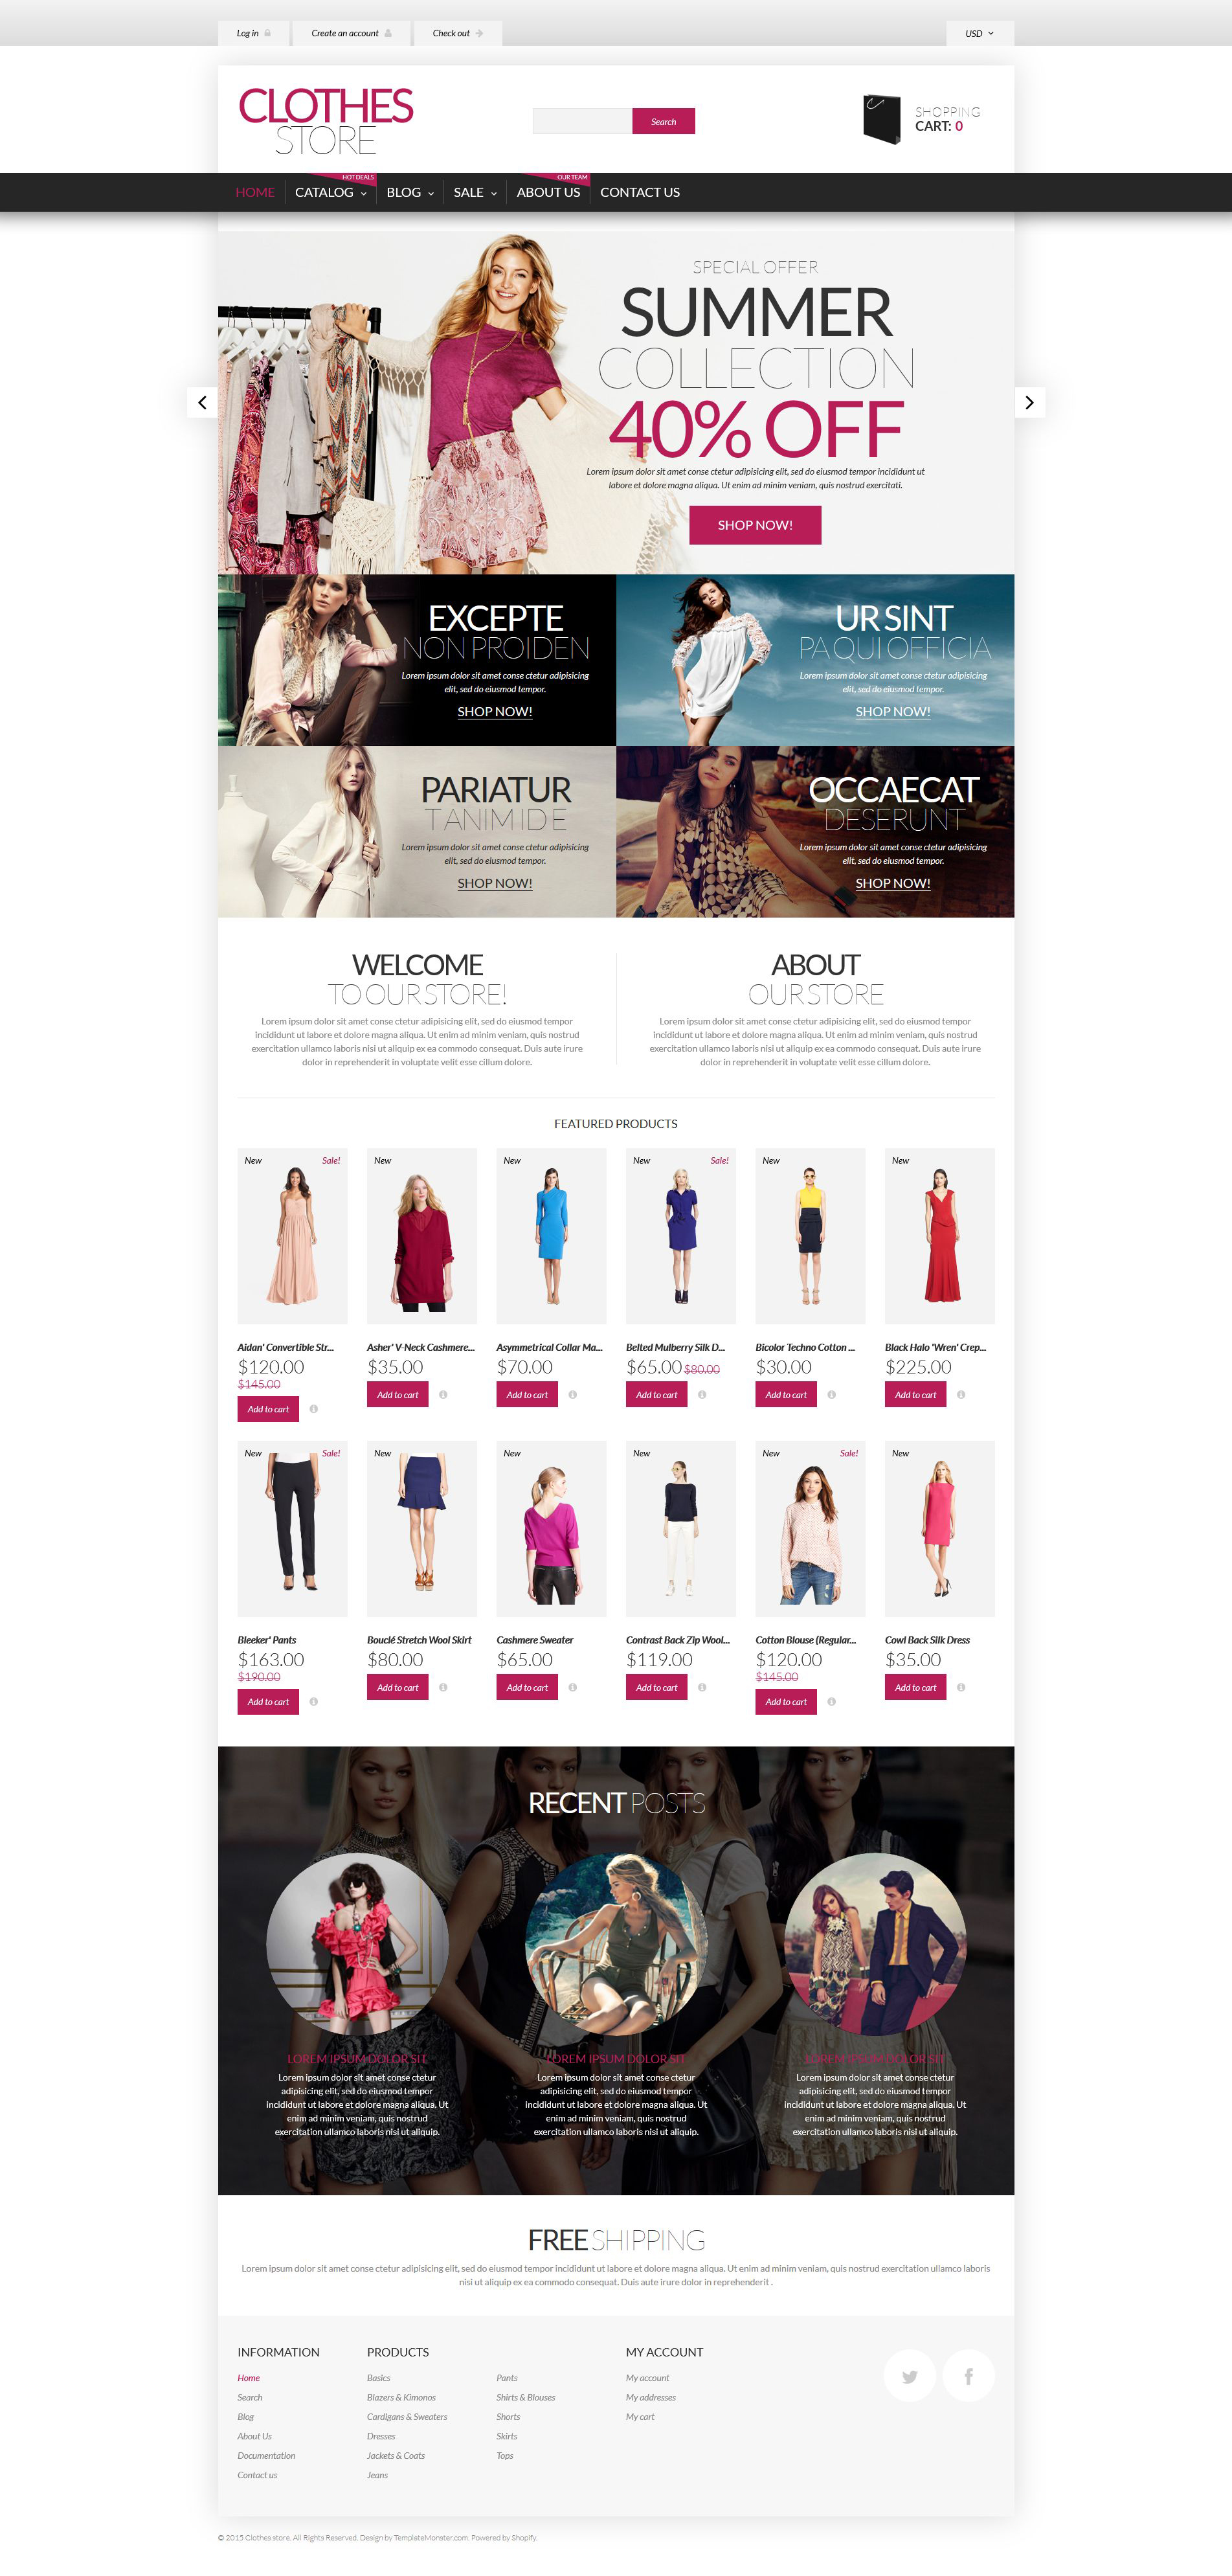 The Clothes Wear Shopify Design 53683, one of the best Shopify themes of its kind (fashion, most popular), also known as clothes wear Shopify template, clothing Shopify template, apparel Shopify template, work Shopify template, shoes Shopify template, gloves Shopify template, wear Shopify template, Safety Boots WEAR footwear Shopify template, shirts Shopify template, protective Shopify template, goggles Shopify template, protective Shopify template, eyewear and related with clothes wear, clothing, apparel, work, shoes, gloves, wear, Safety Boots WEAR footwear, shirts, protective, goggles, protective, eyewear, etc.